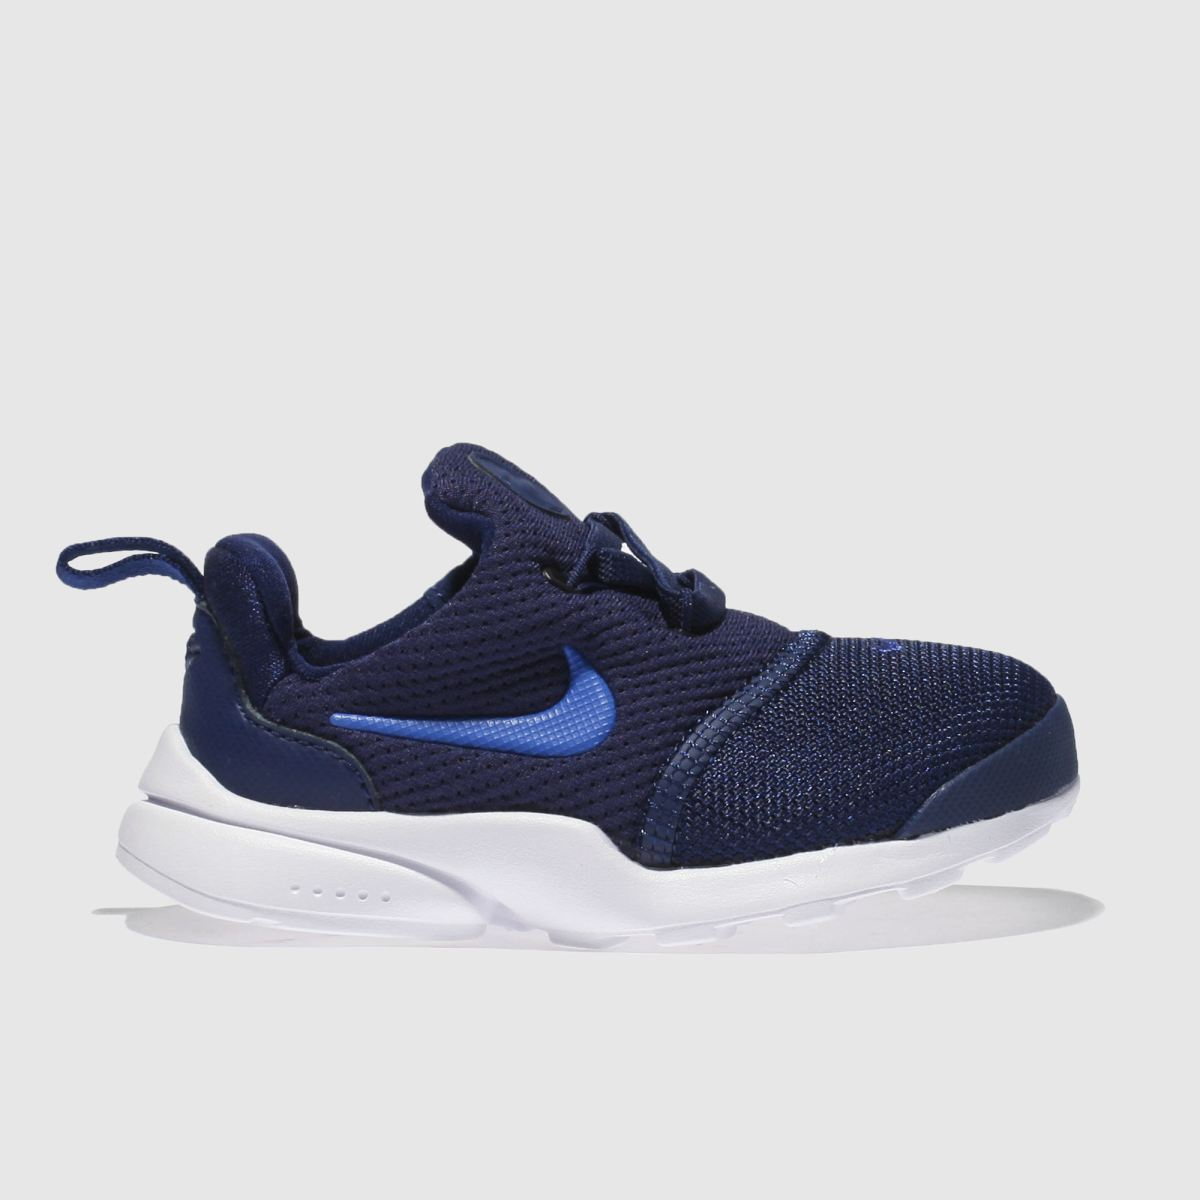 62e2fb49a6867 Nike Navy Presto Fly Trainers Toddler - £14.99 - Bullring   Grand Central